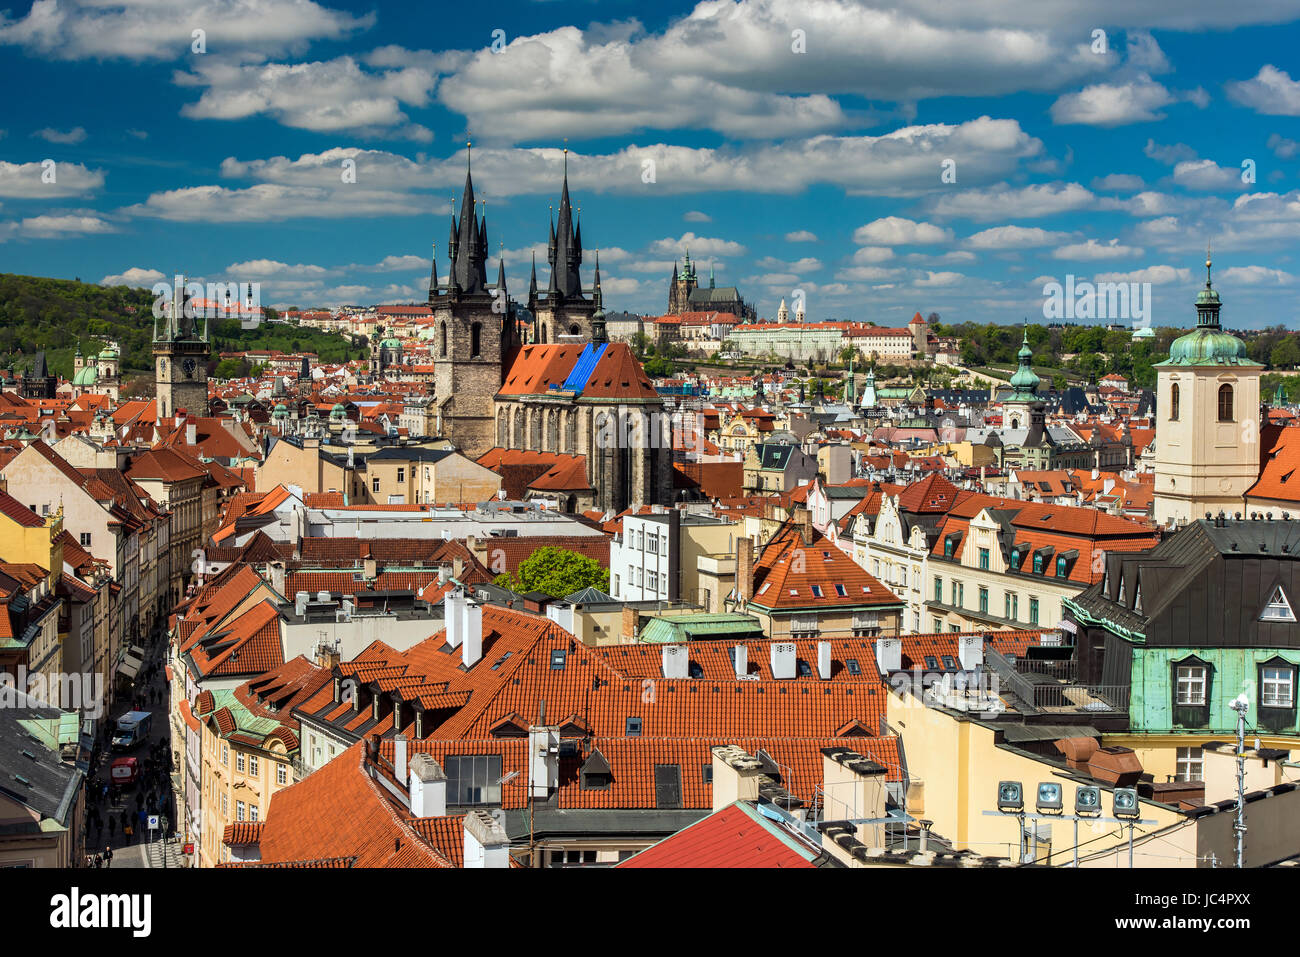 Old town skyline, Prague, Bohemia, Czech Republic - Stock Image